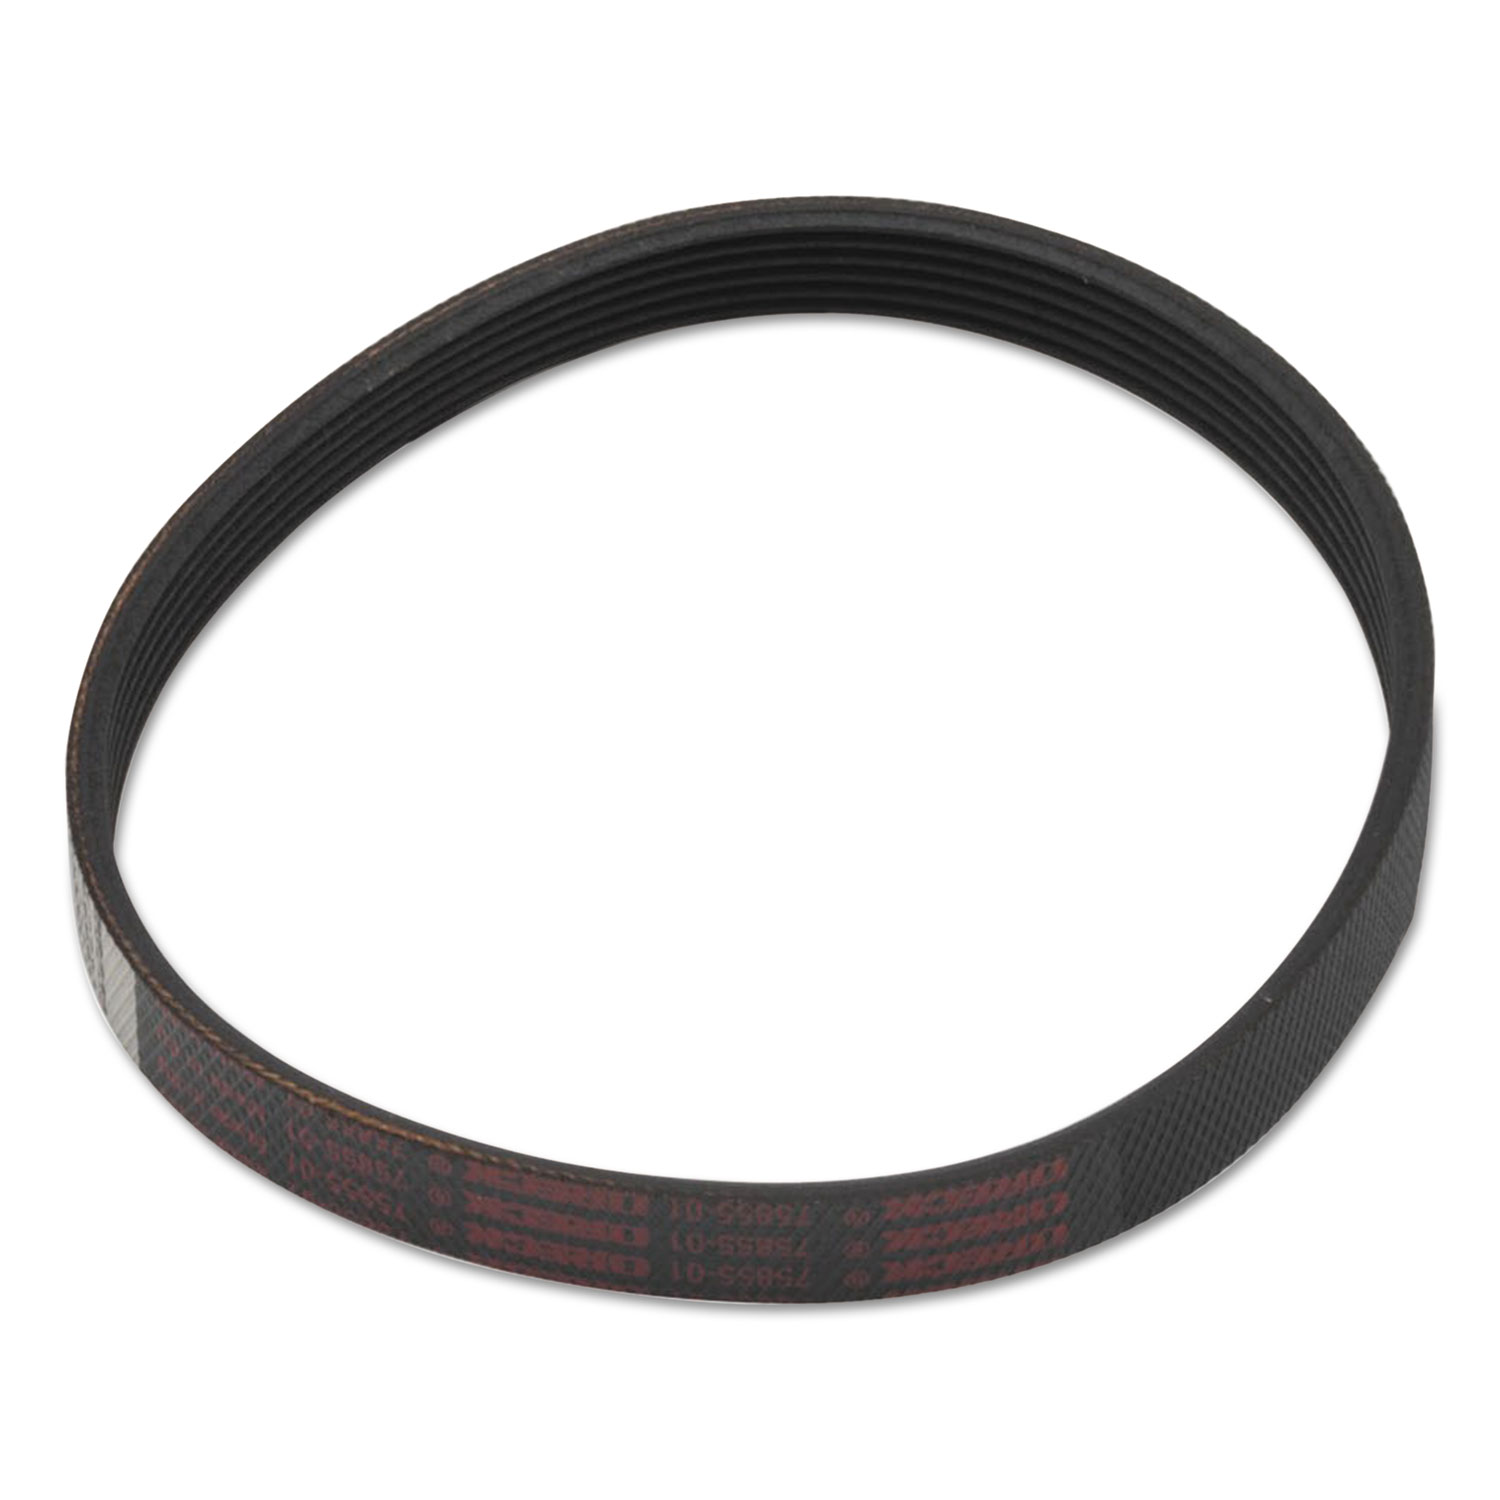 Replacement Permanent Belt for Oreck XL, 3/Pk